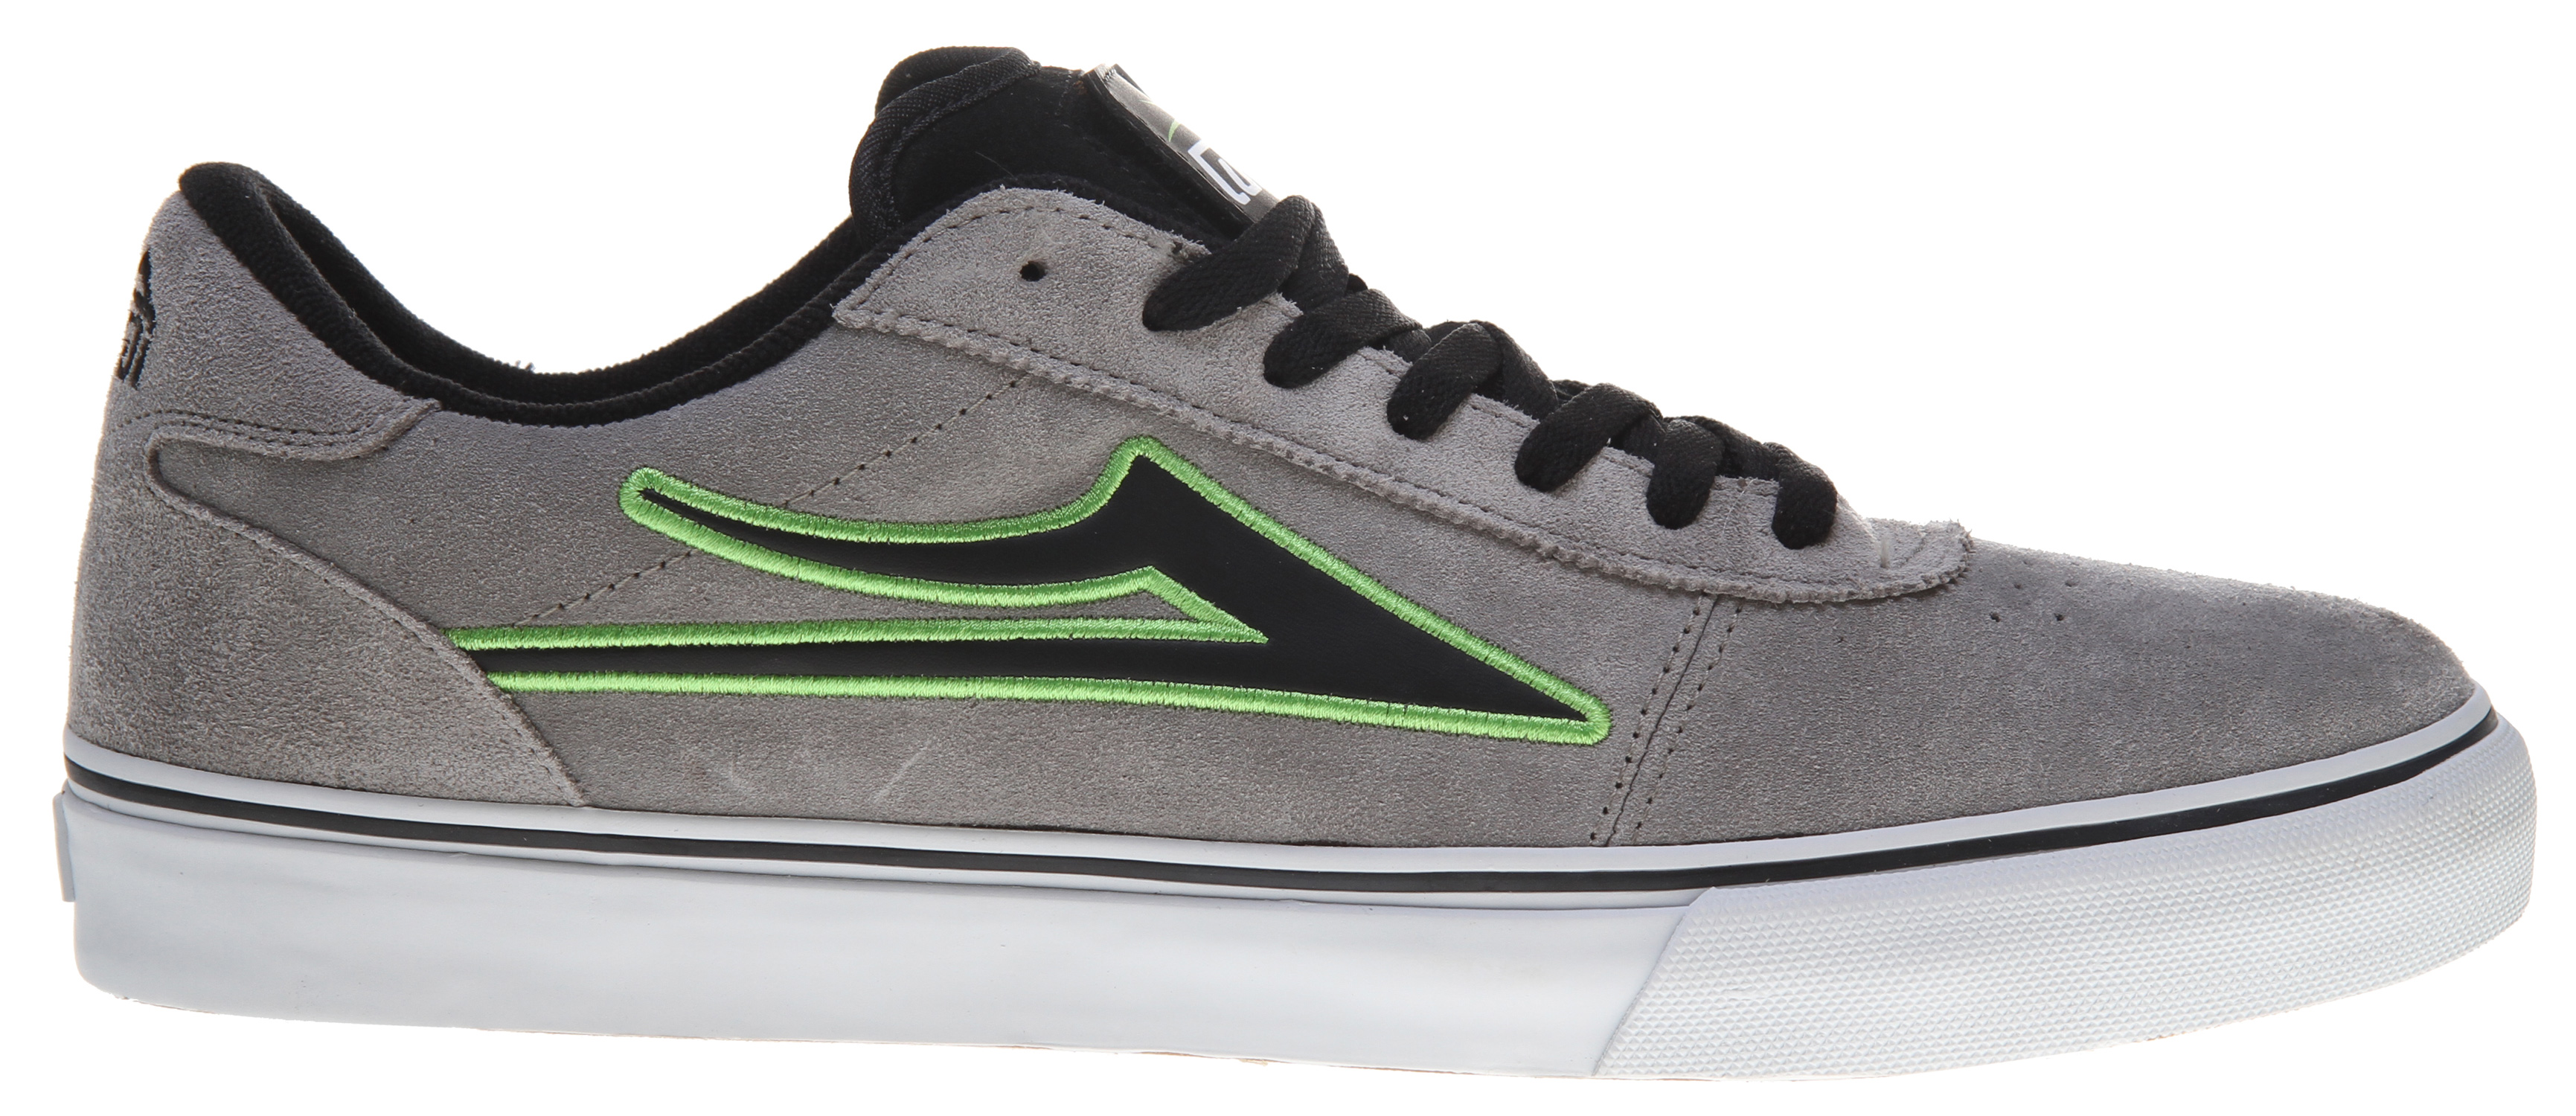 Skateboard Skate shoes should be comfortable, look great, be reasonably priced, and last longer than a few tough months. These Lakai Manchester Select Skate shoes, available in black with lime suede trim design, fit the bill. They are constructed with durability in mind and are built to last. With a comfortable cushioned sole and durable suede or suede/leather upper fabric, these shoes are sure to attract plenty of attention and cradle your feet like a fitted glove.Key Features of the Lakai Manchester Select Skate Shoes: Flexible Vulcanized Construction Tacky Gum Rubber Outsole Durable Suede Or Suede / Leather Upper Form Fitting Upper For Increased Board Feel Full-Length Shock Absorbing Insole Interchangeable tongue patches on Patch Kit colorways only - $37.95